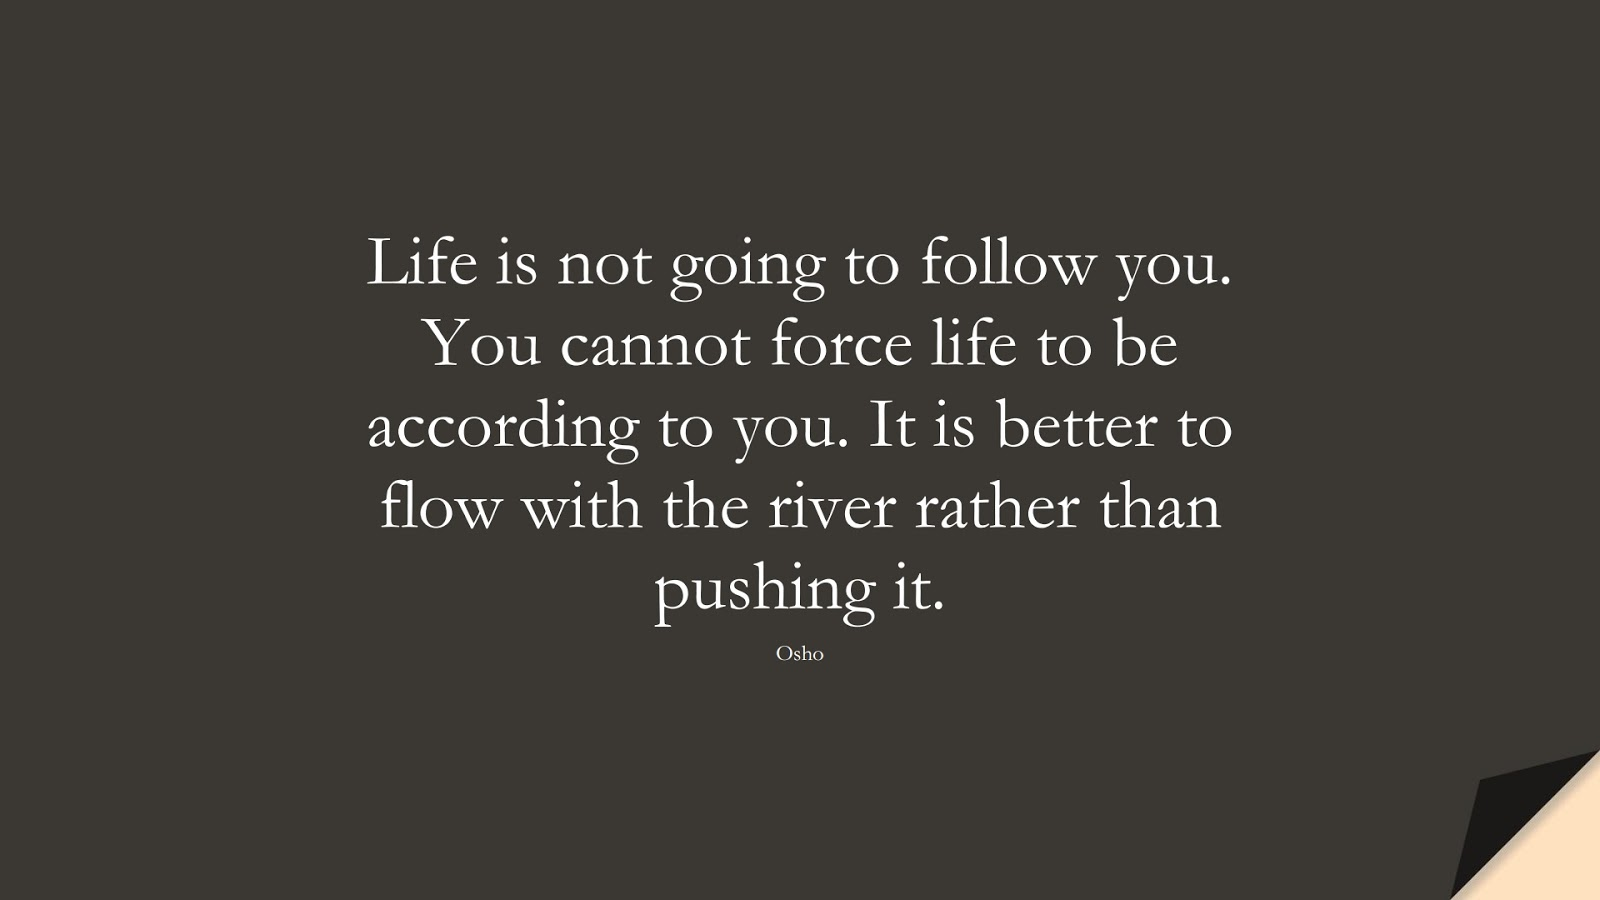 Life is not going to follow you. You cannot force life to be according to you. It is better to flow with the river rather than pushing it. (Osho);  #CalmQuotes